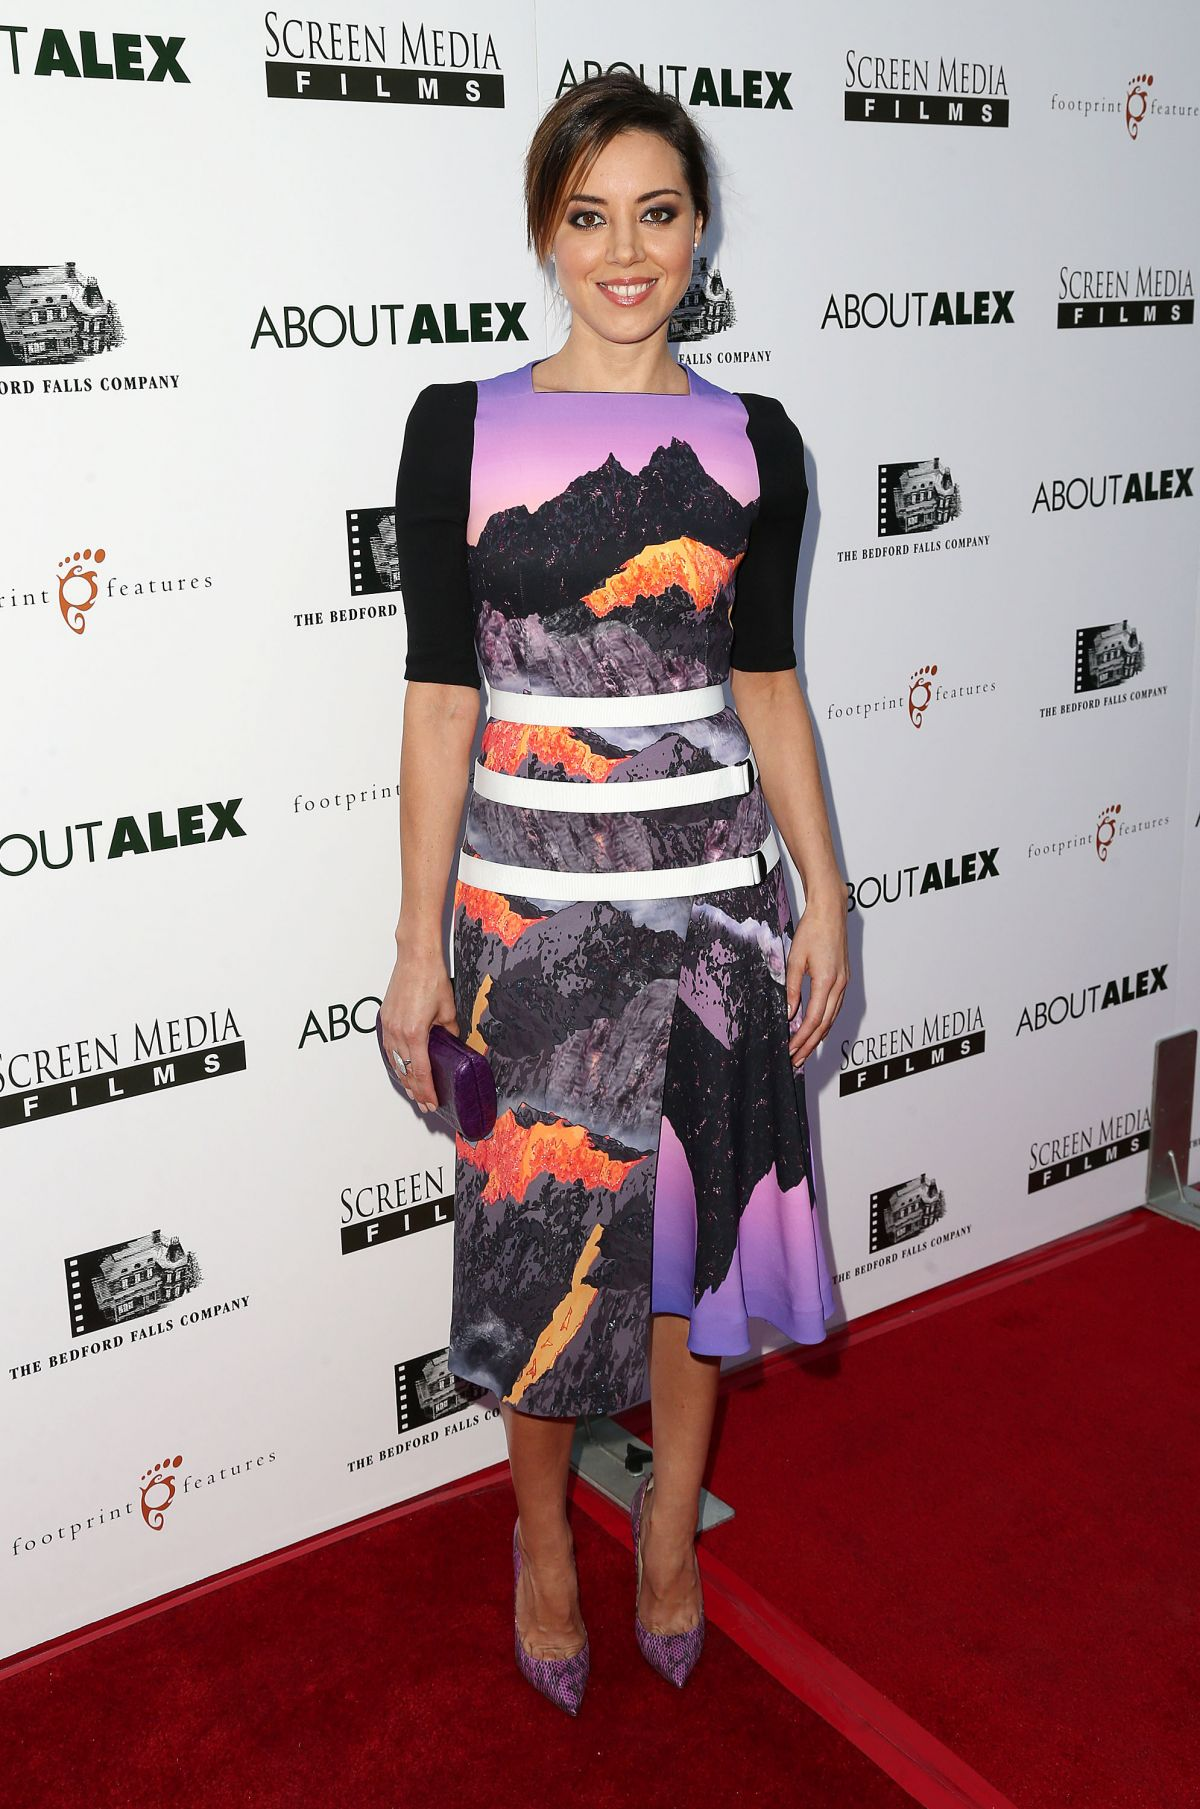 AUBREY PLAZA at About Alex Premiere in Hollywood